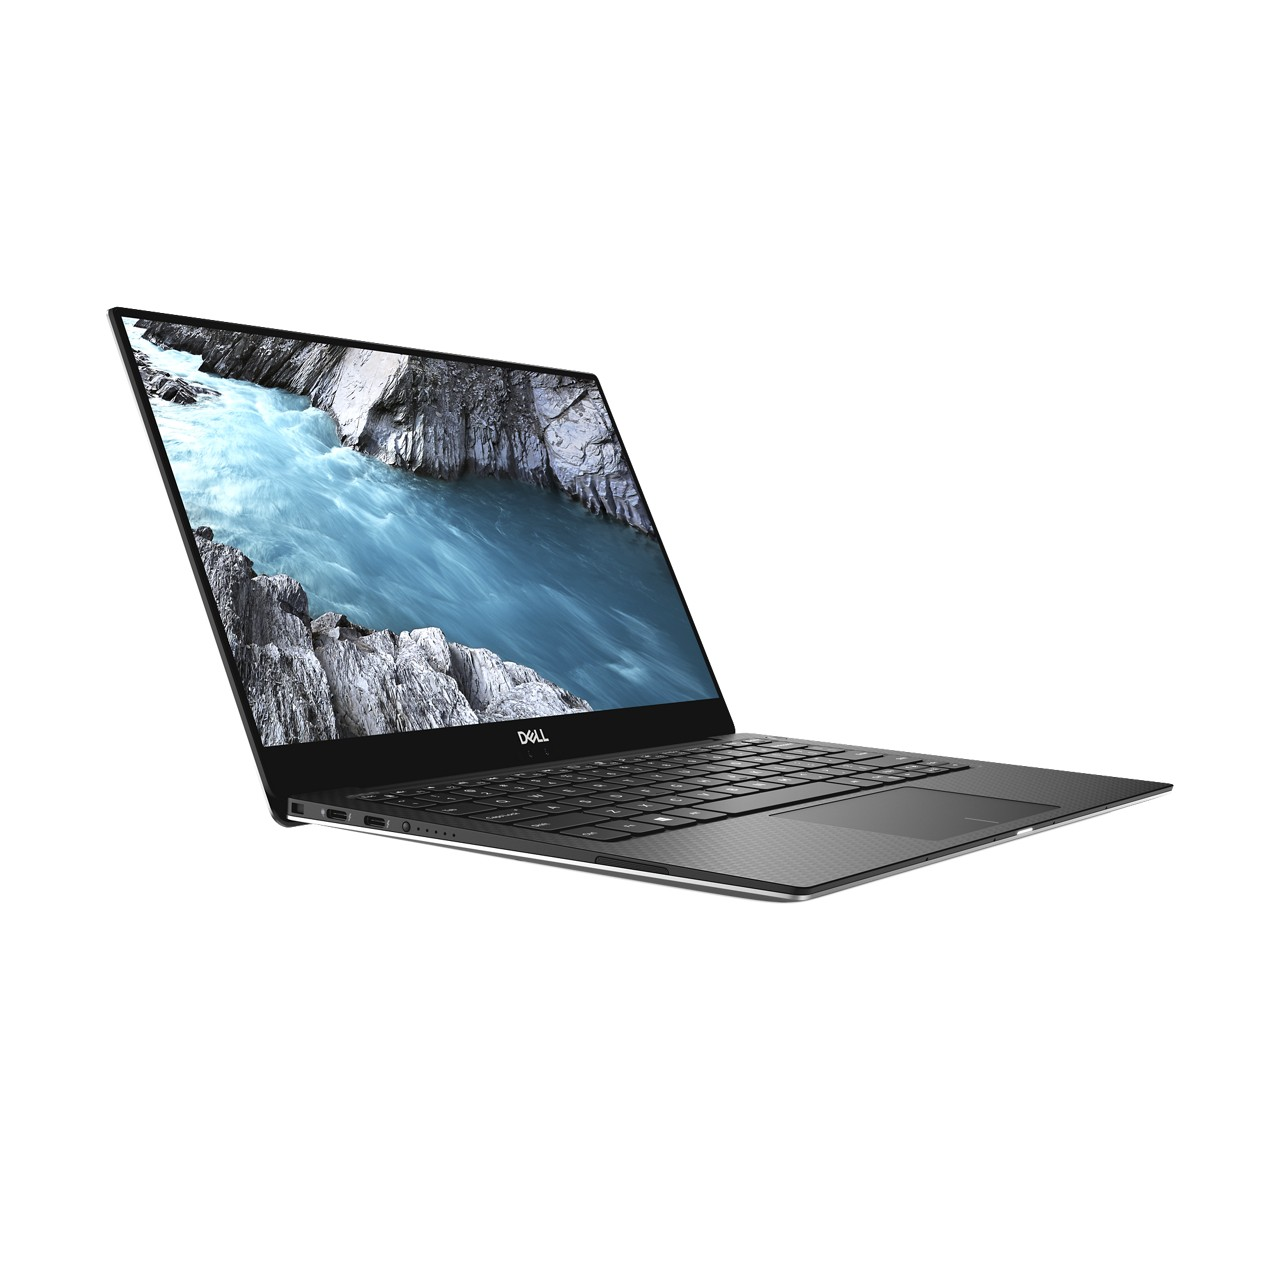 Coolingzone com - Dell laptop using cooling system found on